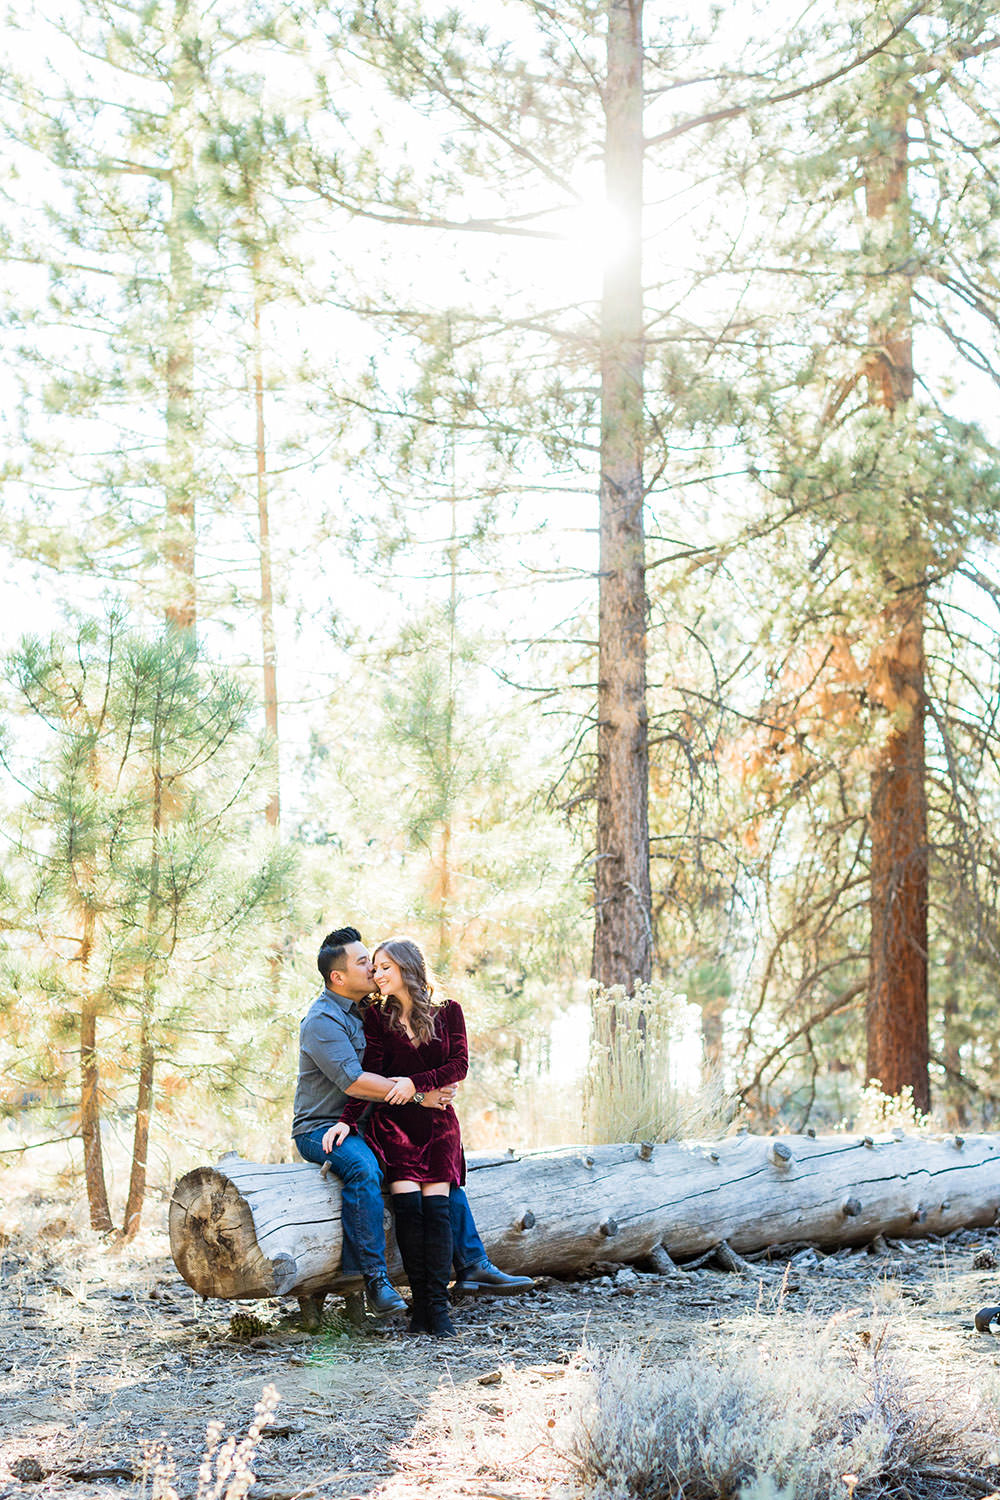 Engagement Session in the woods at Big Bear Lake, California